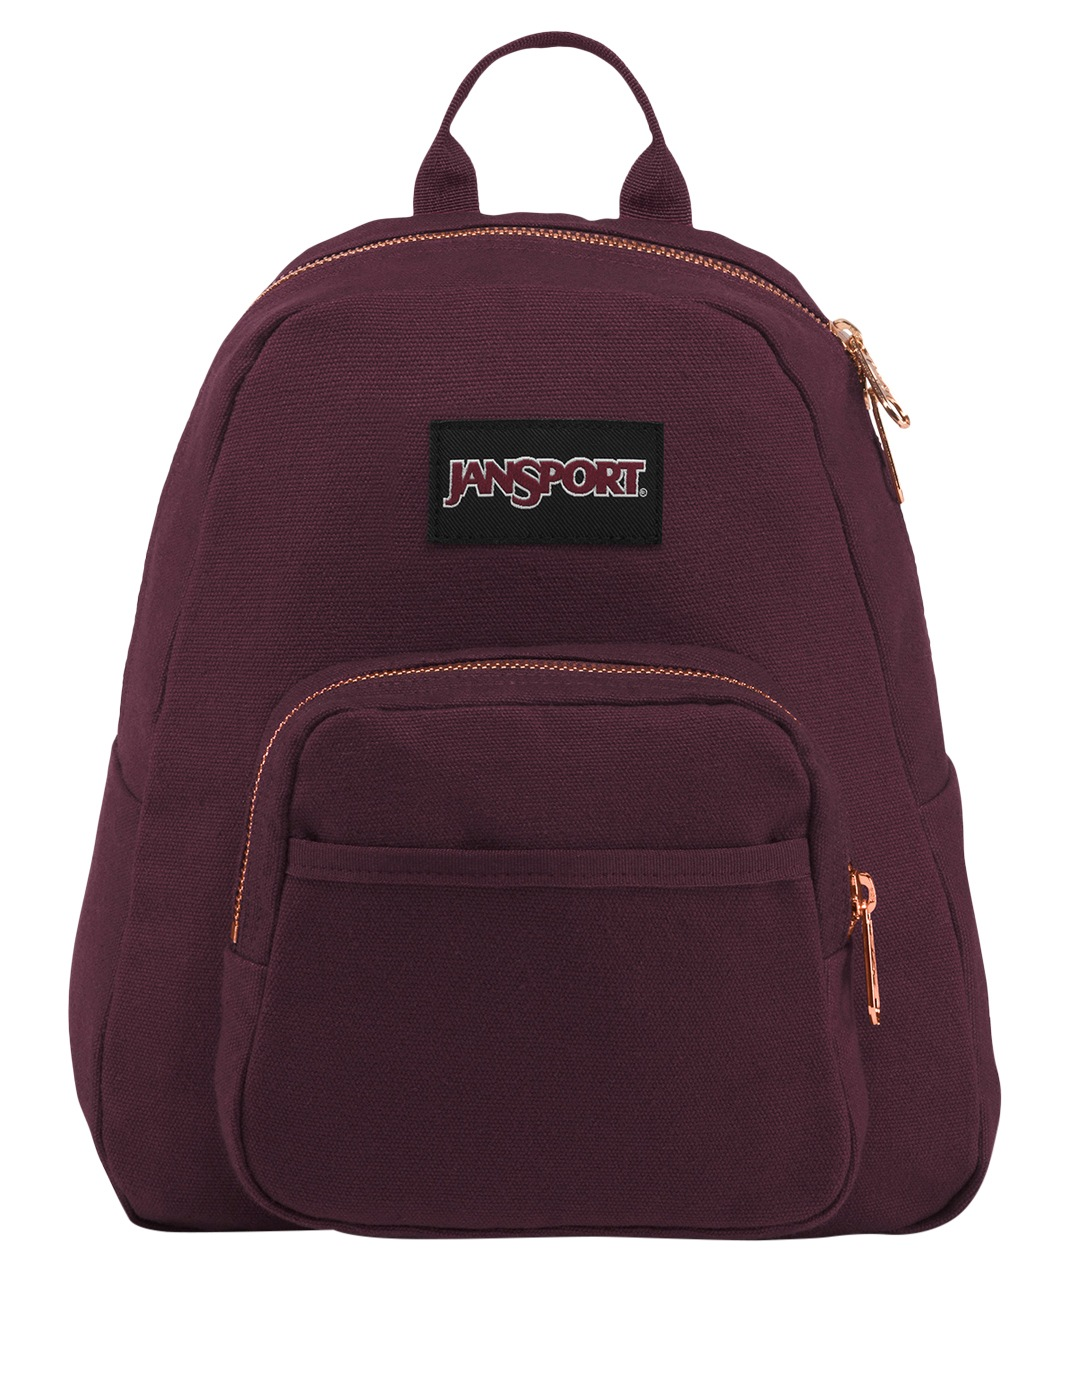 56e2a2040f1c Jansport Mini Backpack Price- Fenix Toulouse Handball